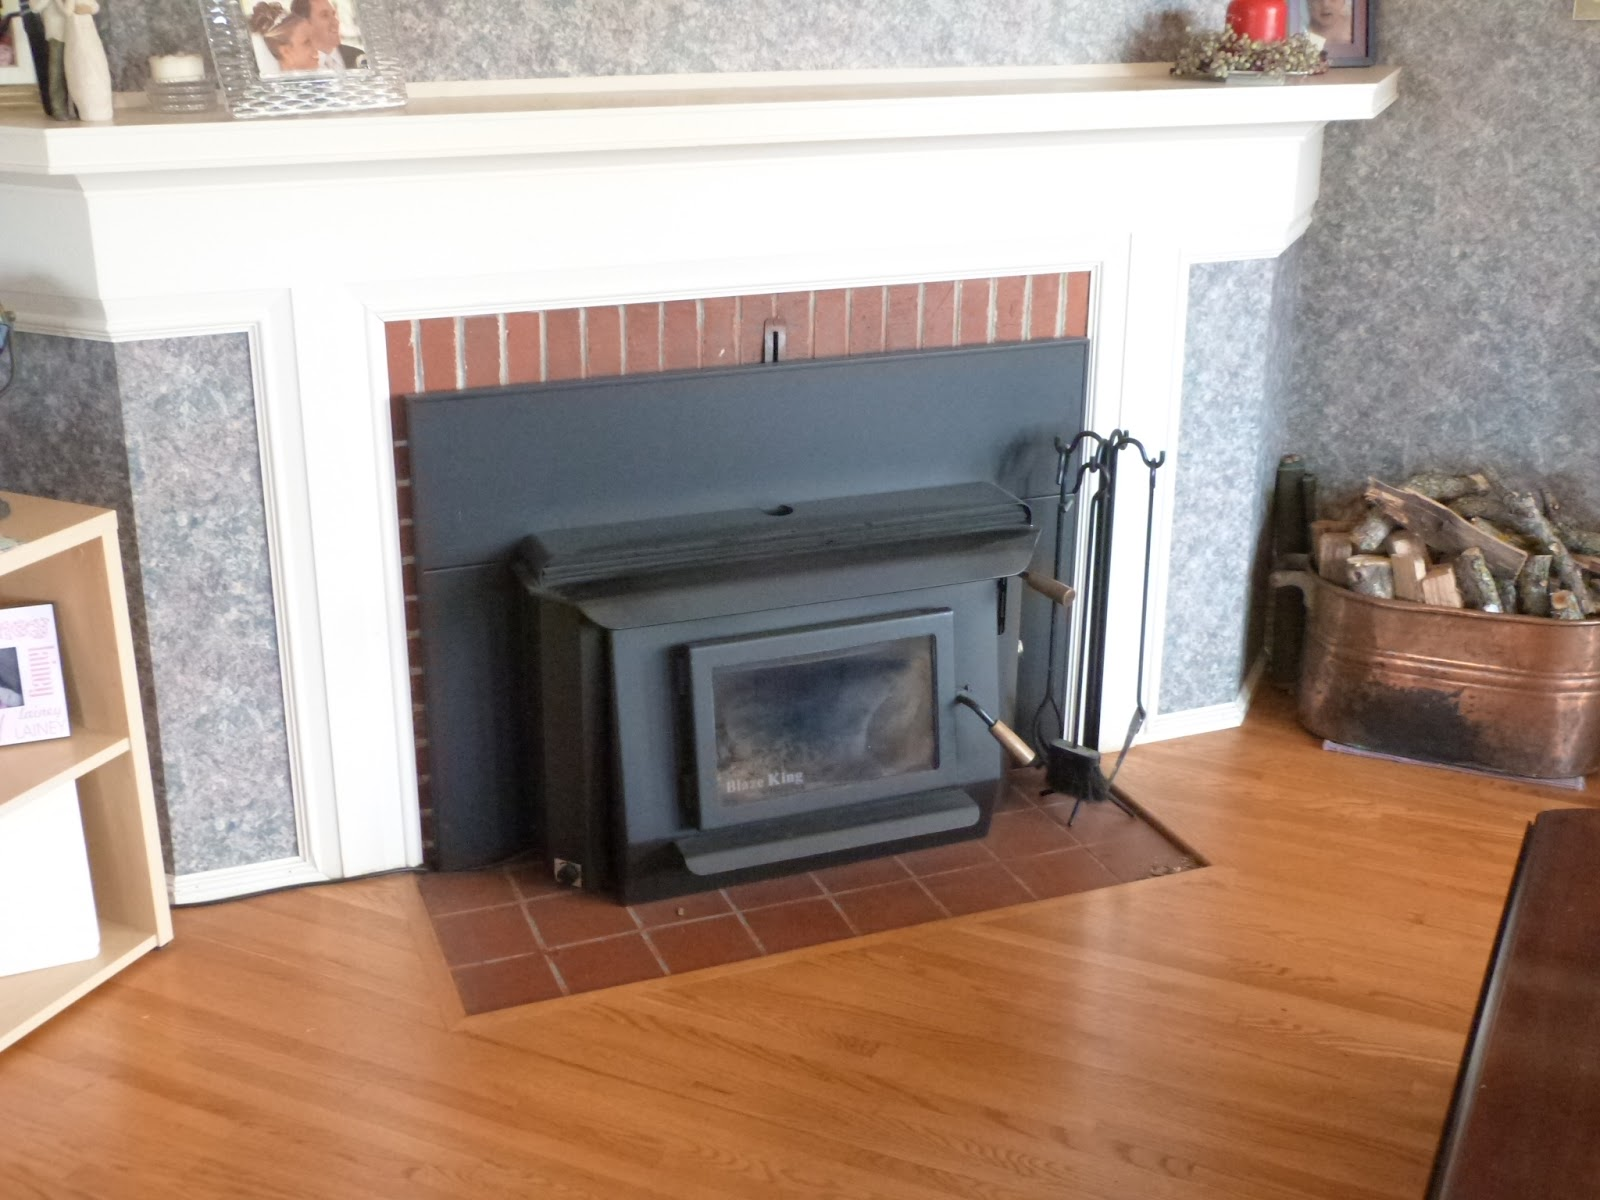 blaze king fireplace inserts. Blyberg Home For Sale  Blaze King Princess PI1010A first fire of the year